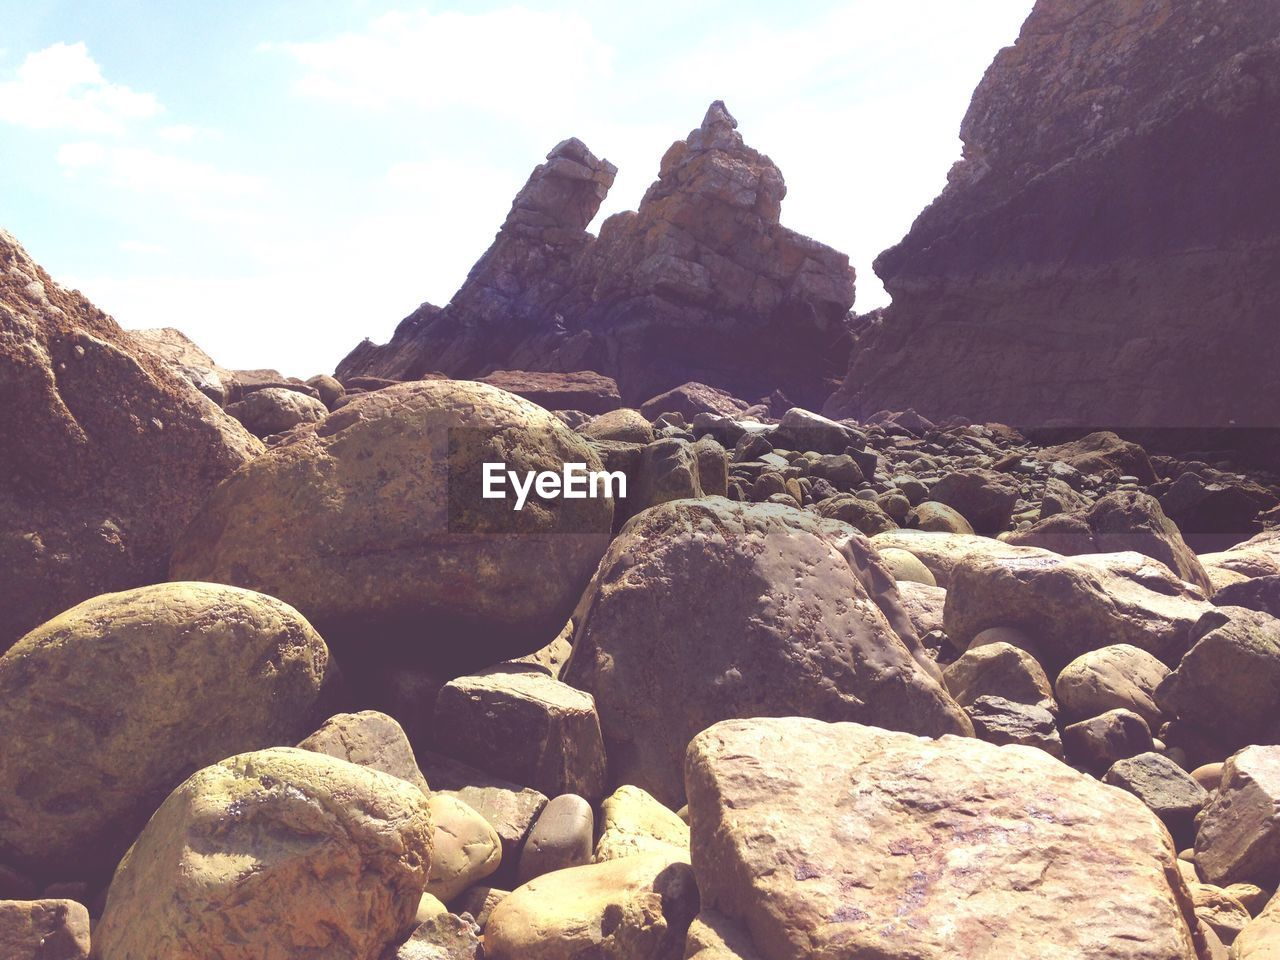 rock - object, nature, rock formation, rock, outdoors, day, geology, no people, beauty in nature, mountain, tranquility, sky, tranquil scene, pebble beach, physical geography, cliff, scenics, water